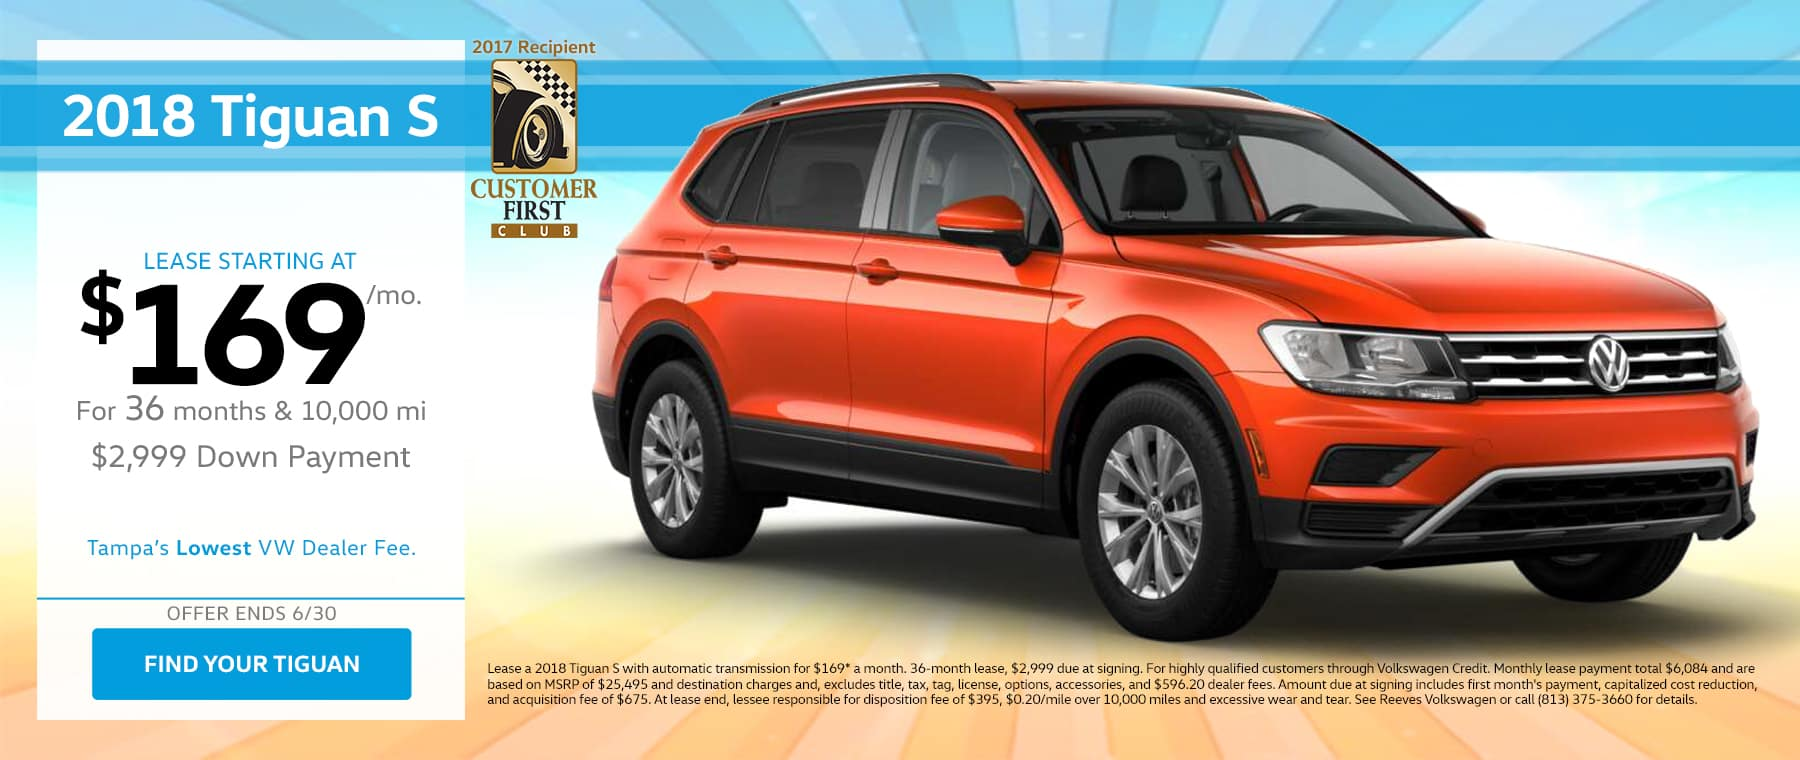 VW June Tiguan Lease Special